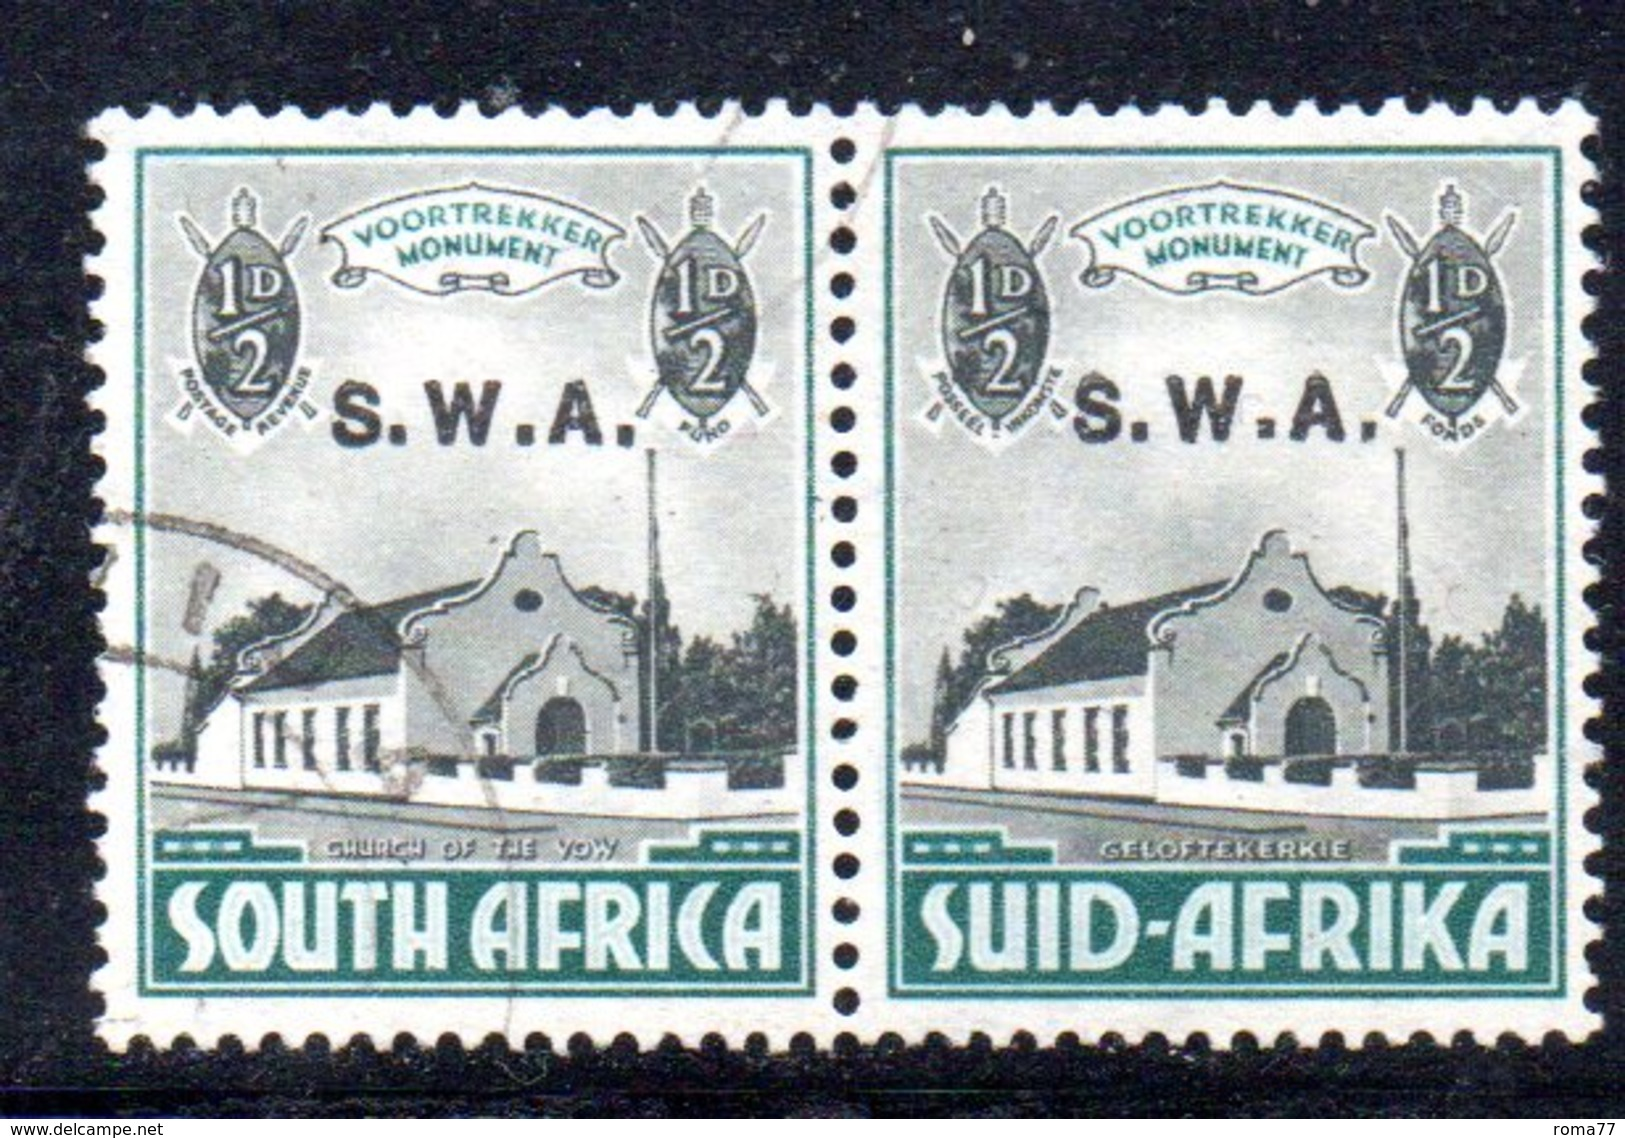 R459 - SOUTH WEST AFRICA  1935 ,  Yvert N. 130+134  Coppia Bilingue Usata - Africa Del Sud-Ovest (1923-1990)